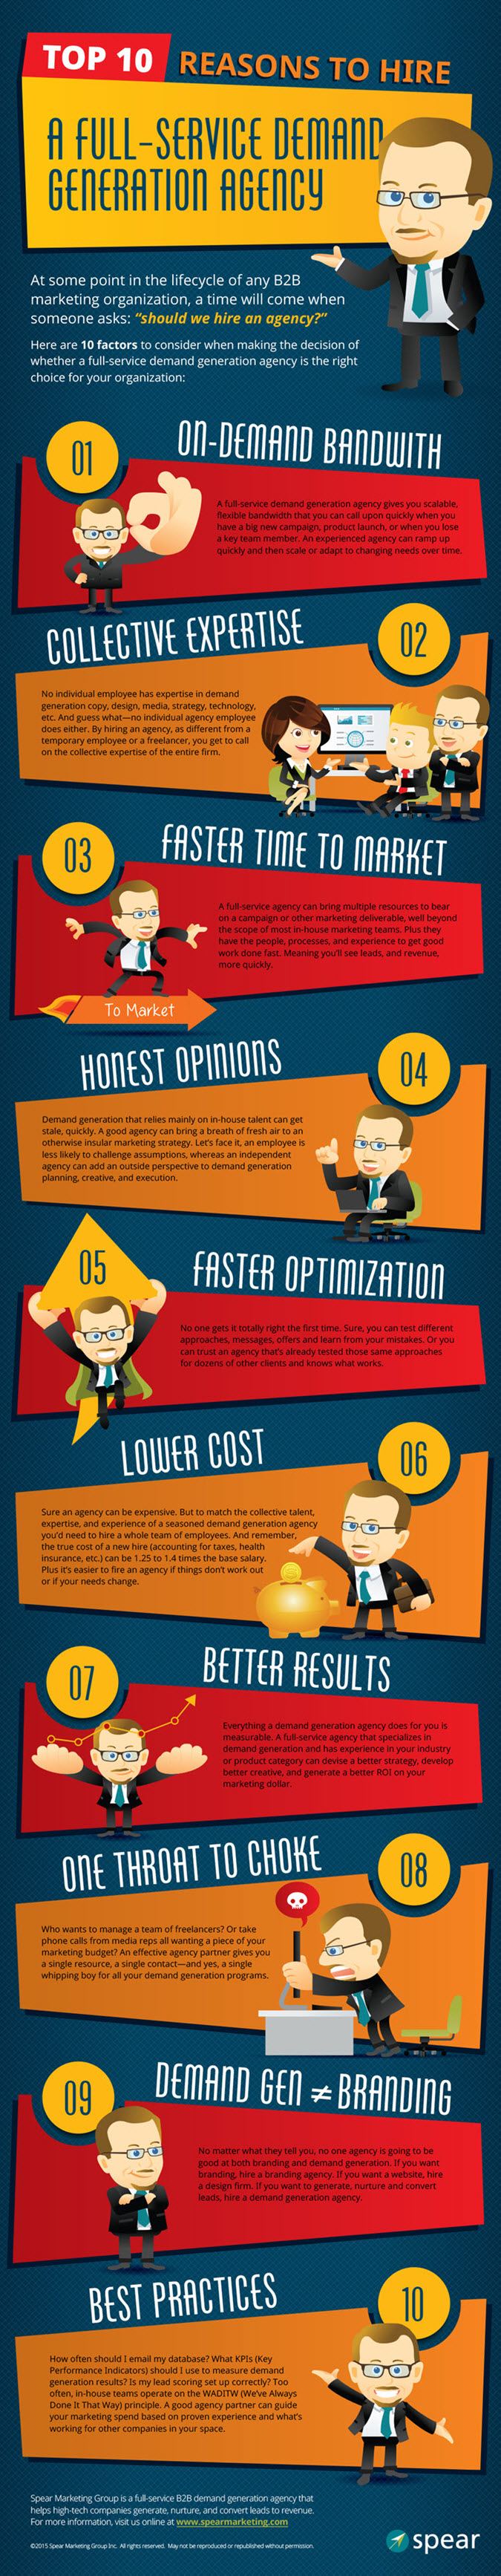 10 Reasons to Hire a Full-Service Demand Gen Agency Infographic